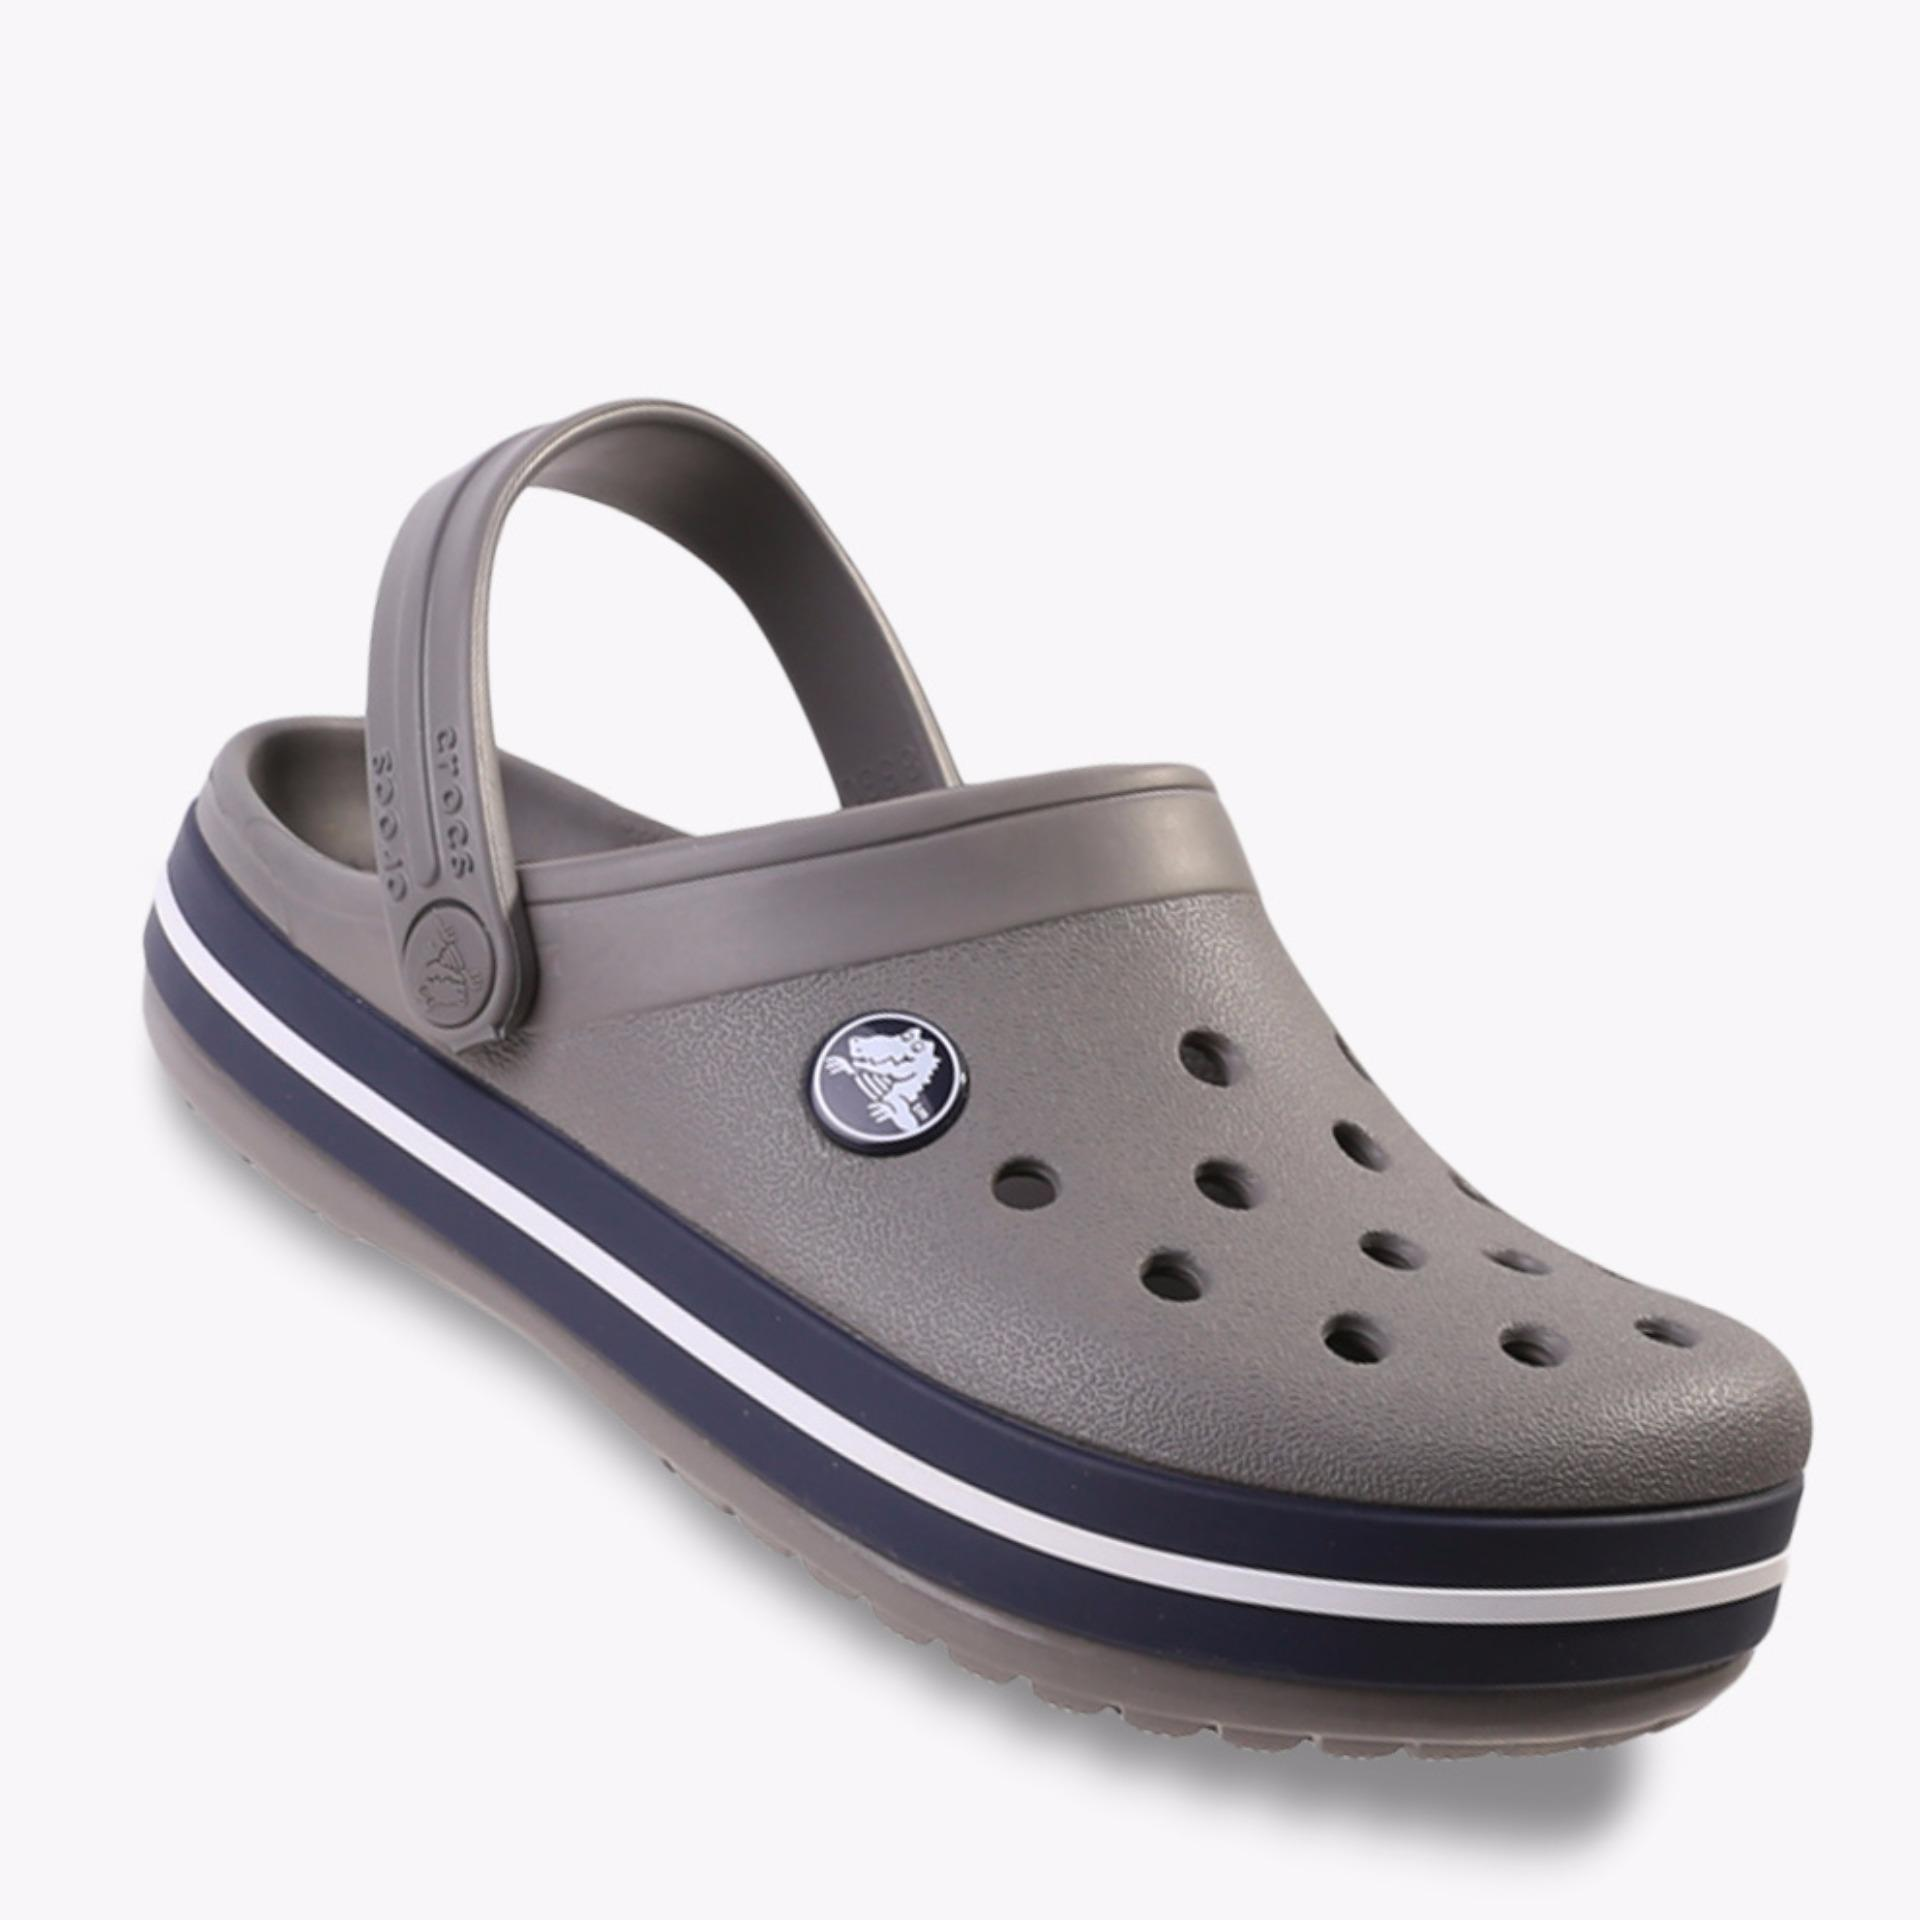 Crocs Classic Clog Kid's Sandals - Abu-abu